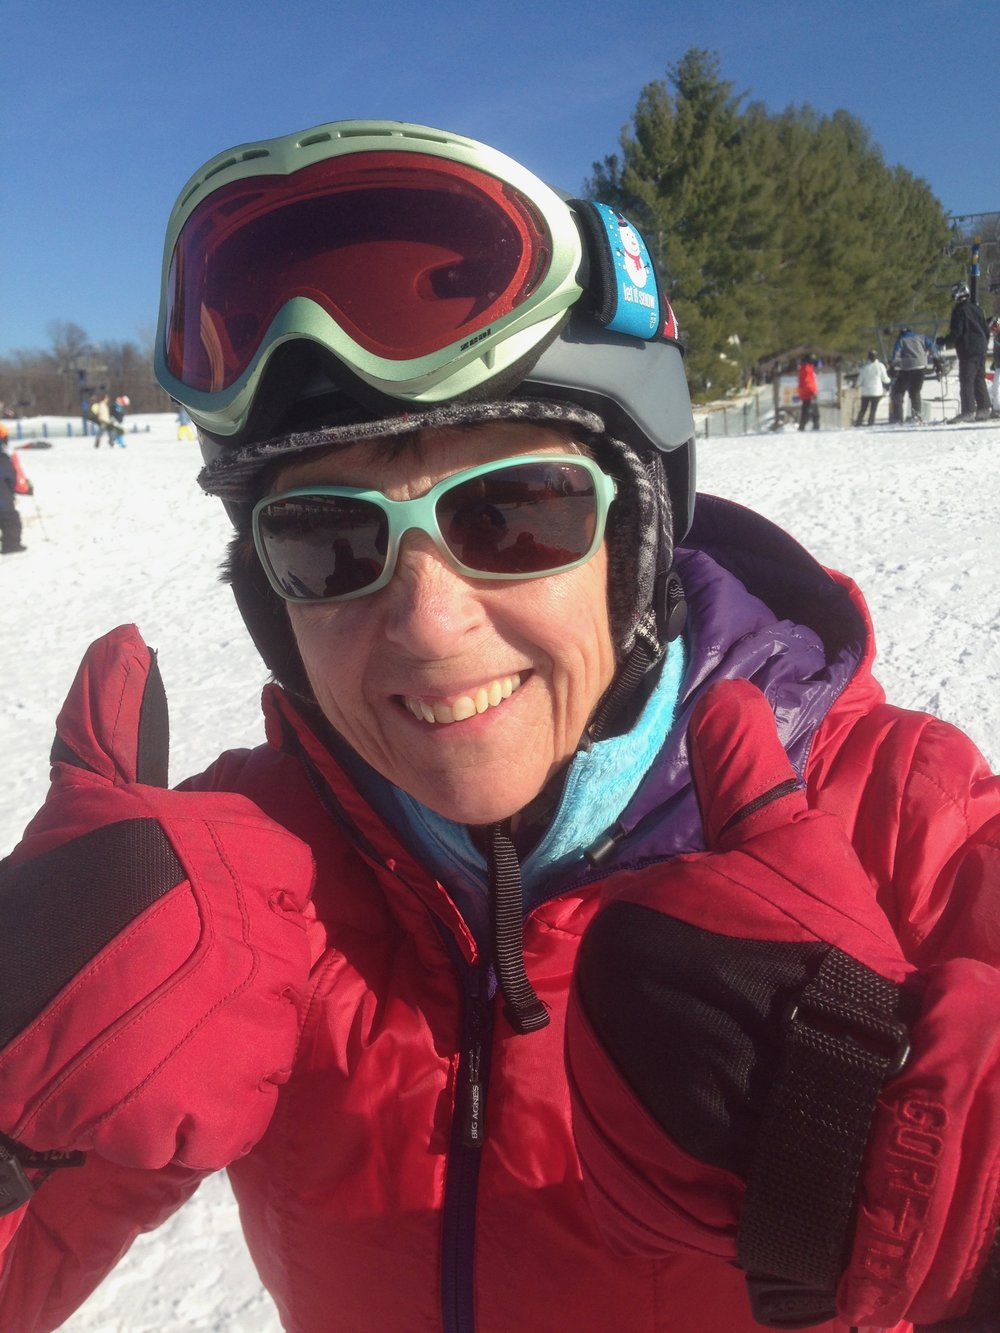 Mary Jo tarallo, Executive director, learn to ski and snowboard/bring a friend initiative